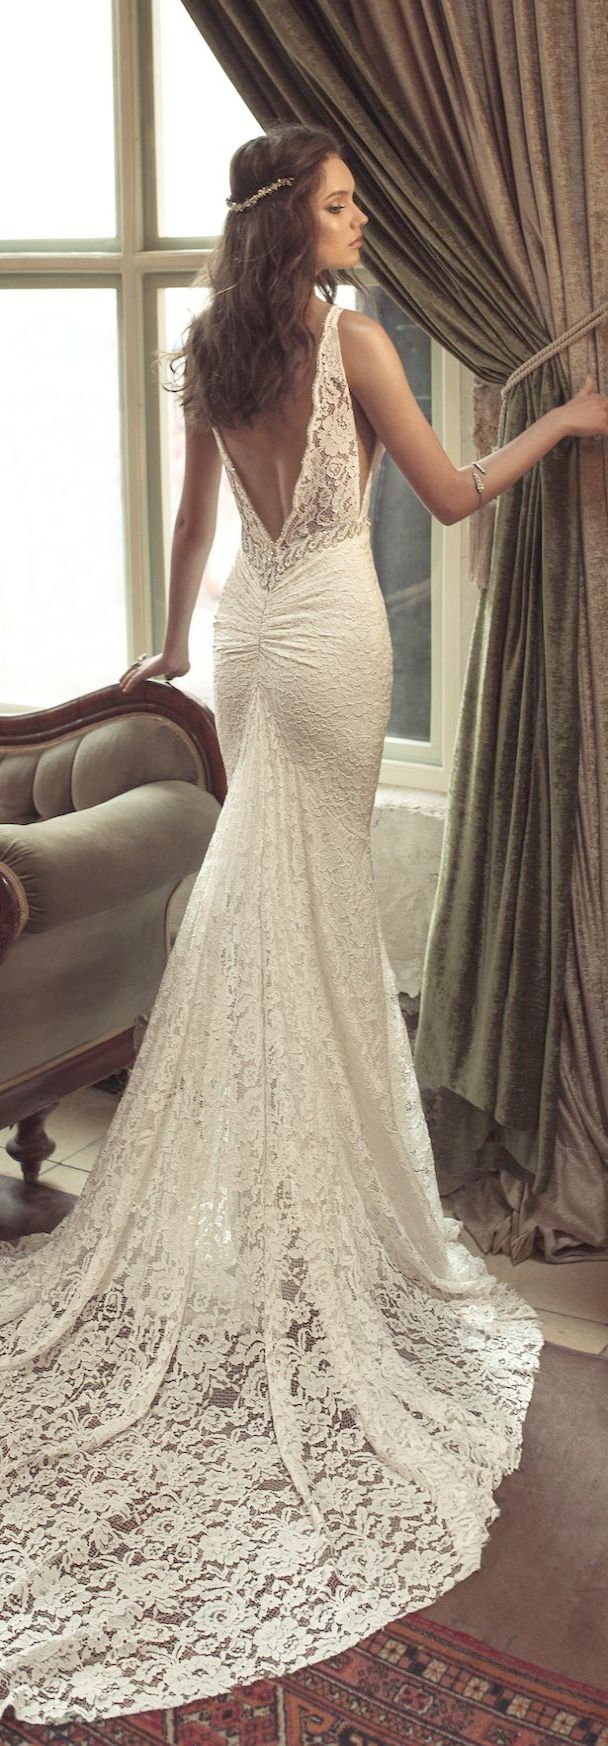 Lace bodysuit south africa  Lace Mermaid Wedding Dress Off Shoulder Lace Wedding Dresses In